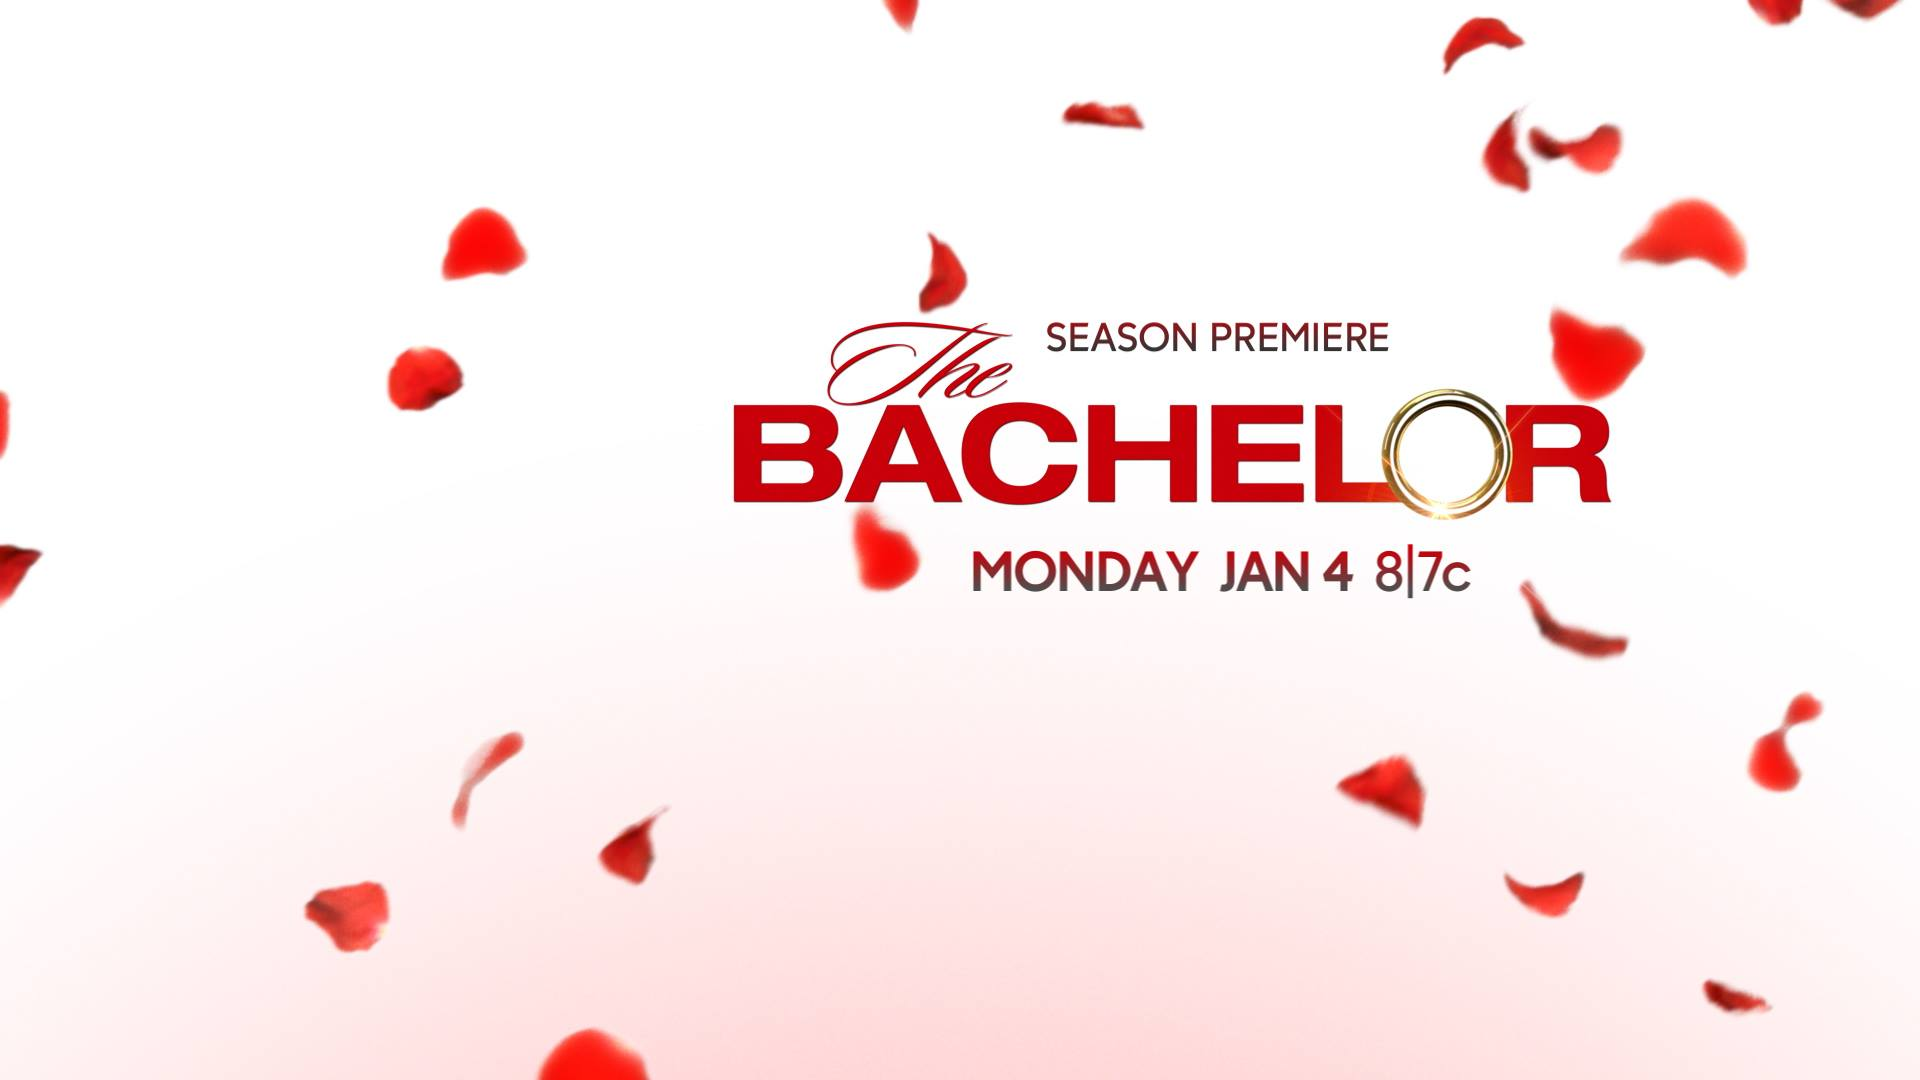 The Bachelor #ABCTVEVENT